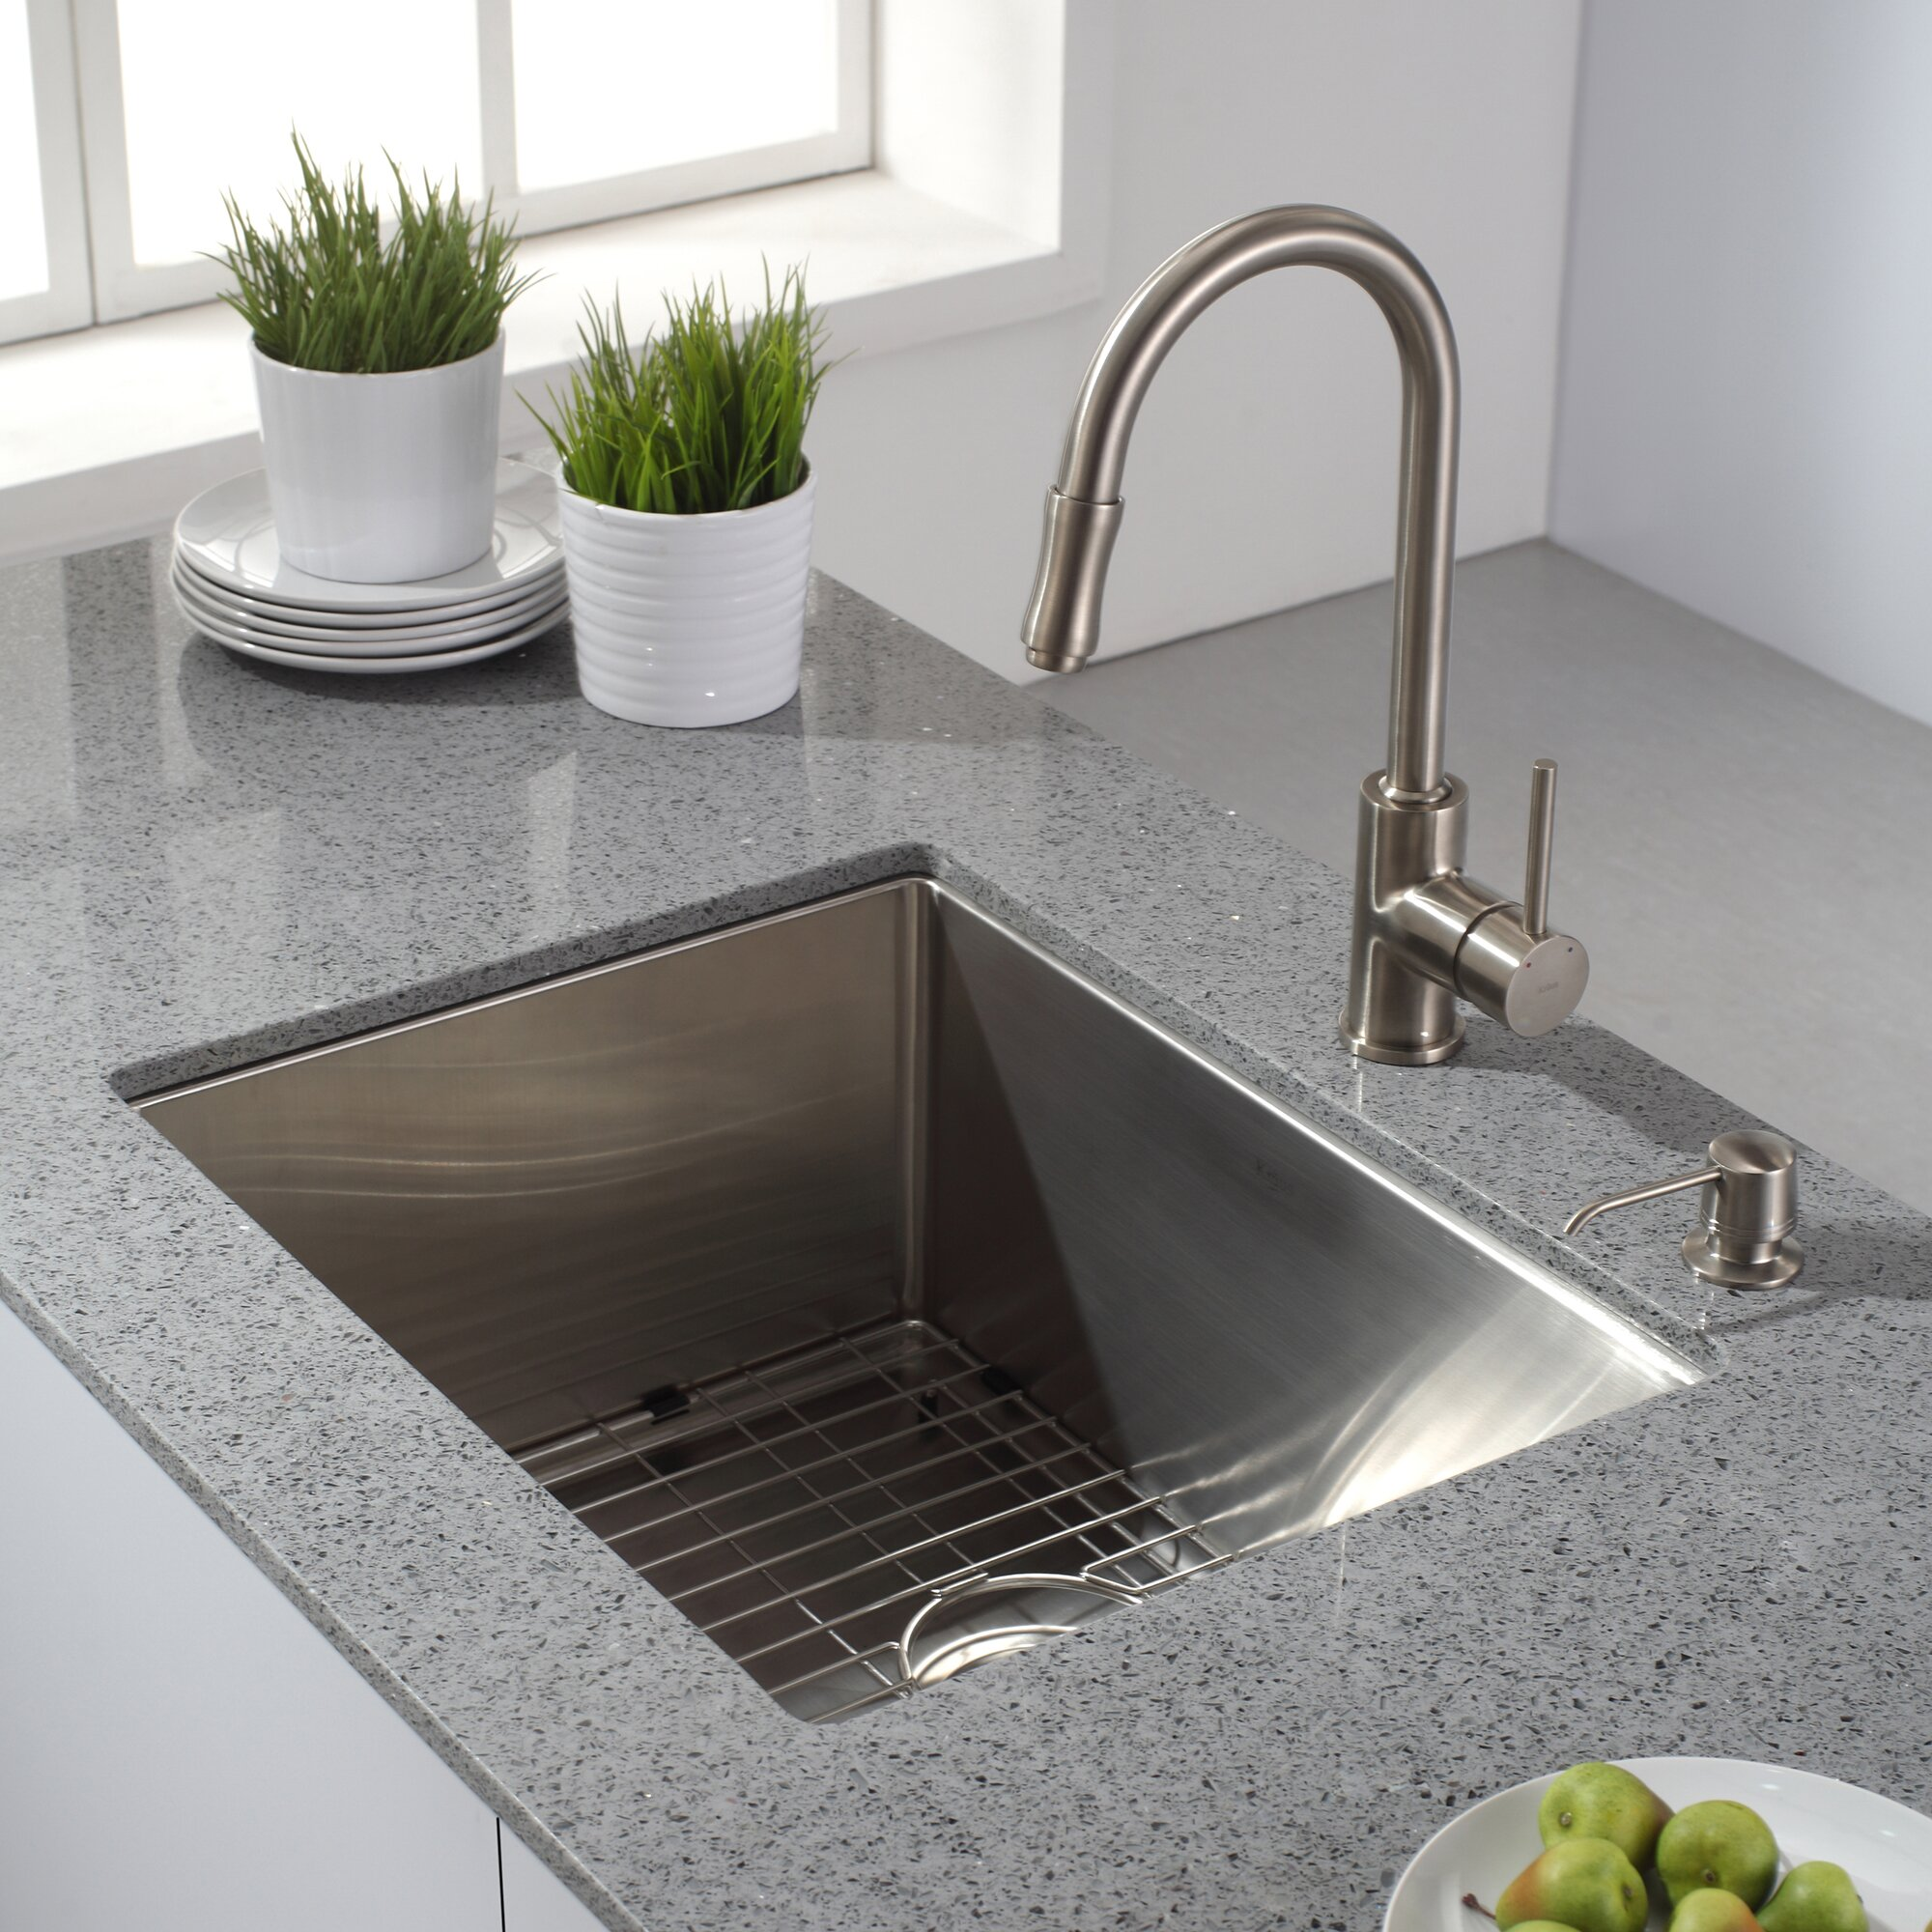 Corian Kitchen Sink For Sale